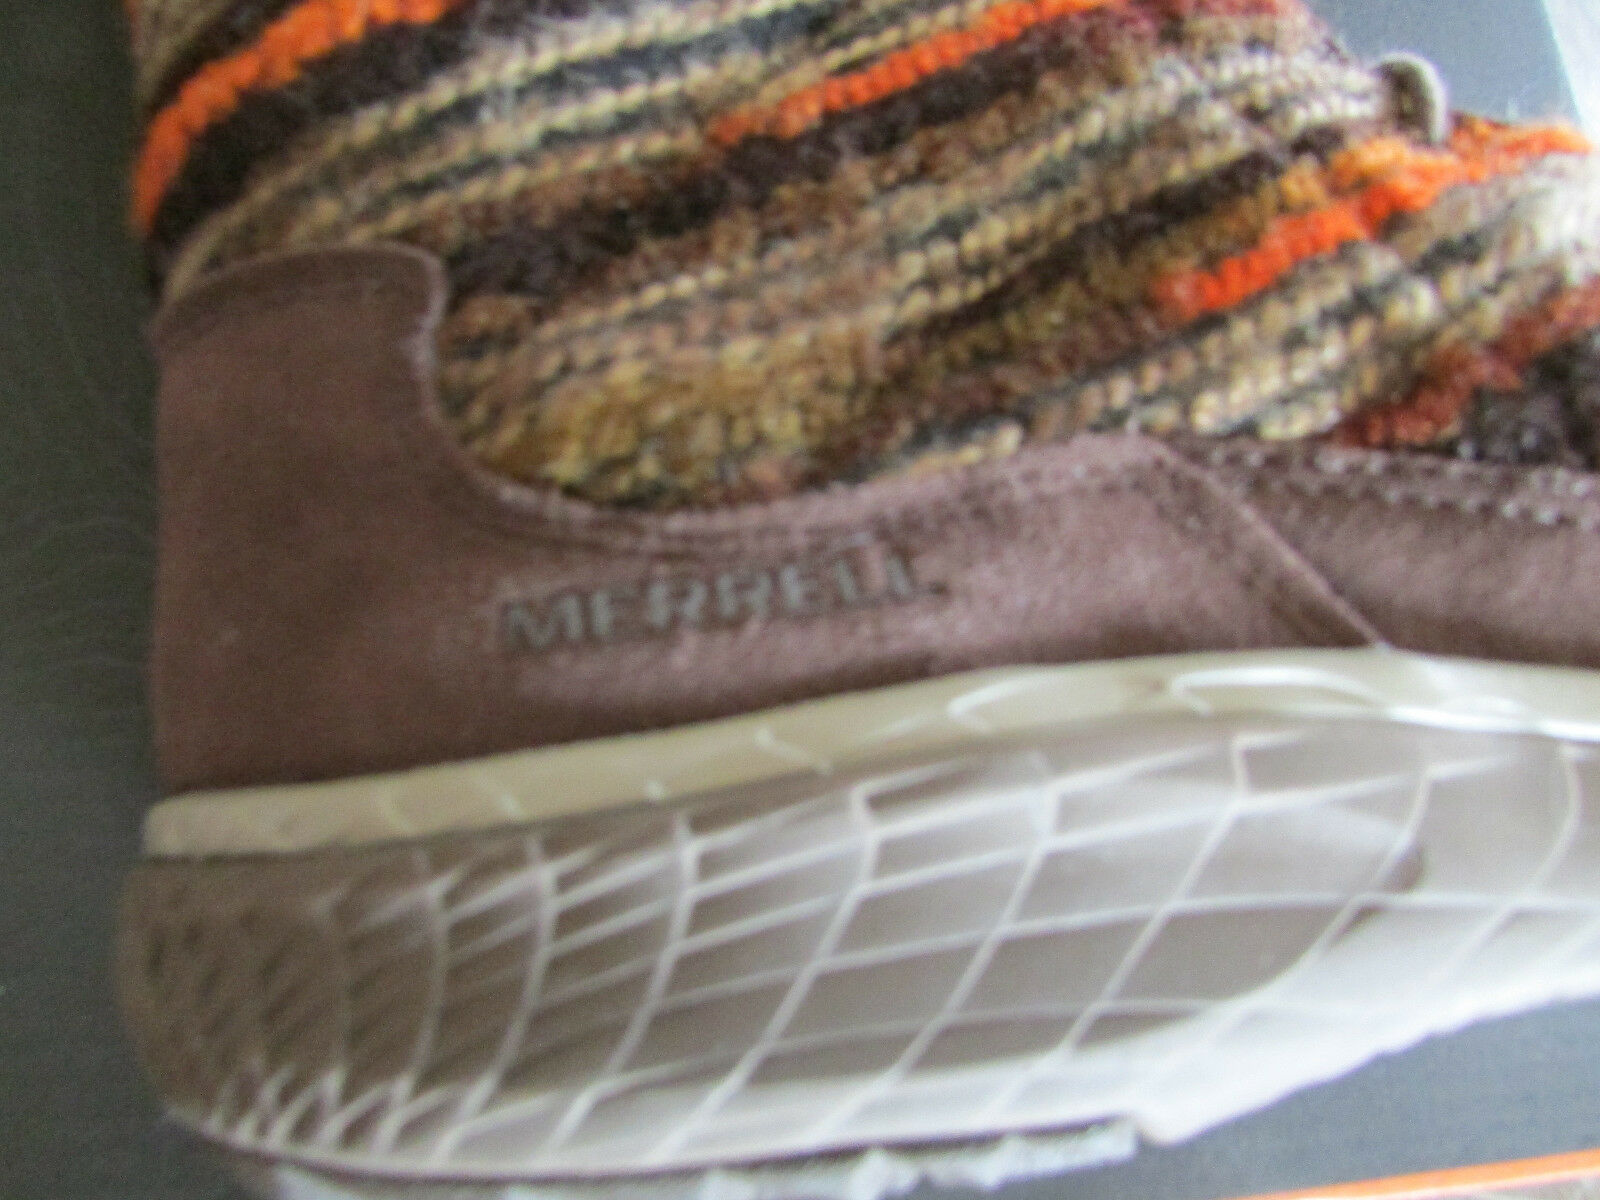 NEW MERRELL PECHORA SKY J42834 TALL/MID Damenschuhe  Stiefel Damenschuhe TALL/MID 7.5 LEATHER WOOL LACE UP 9e059a